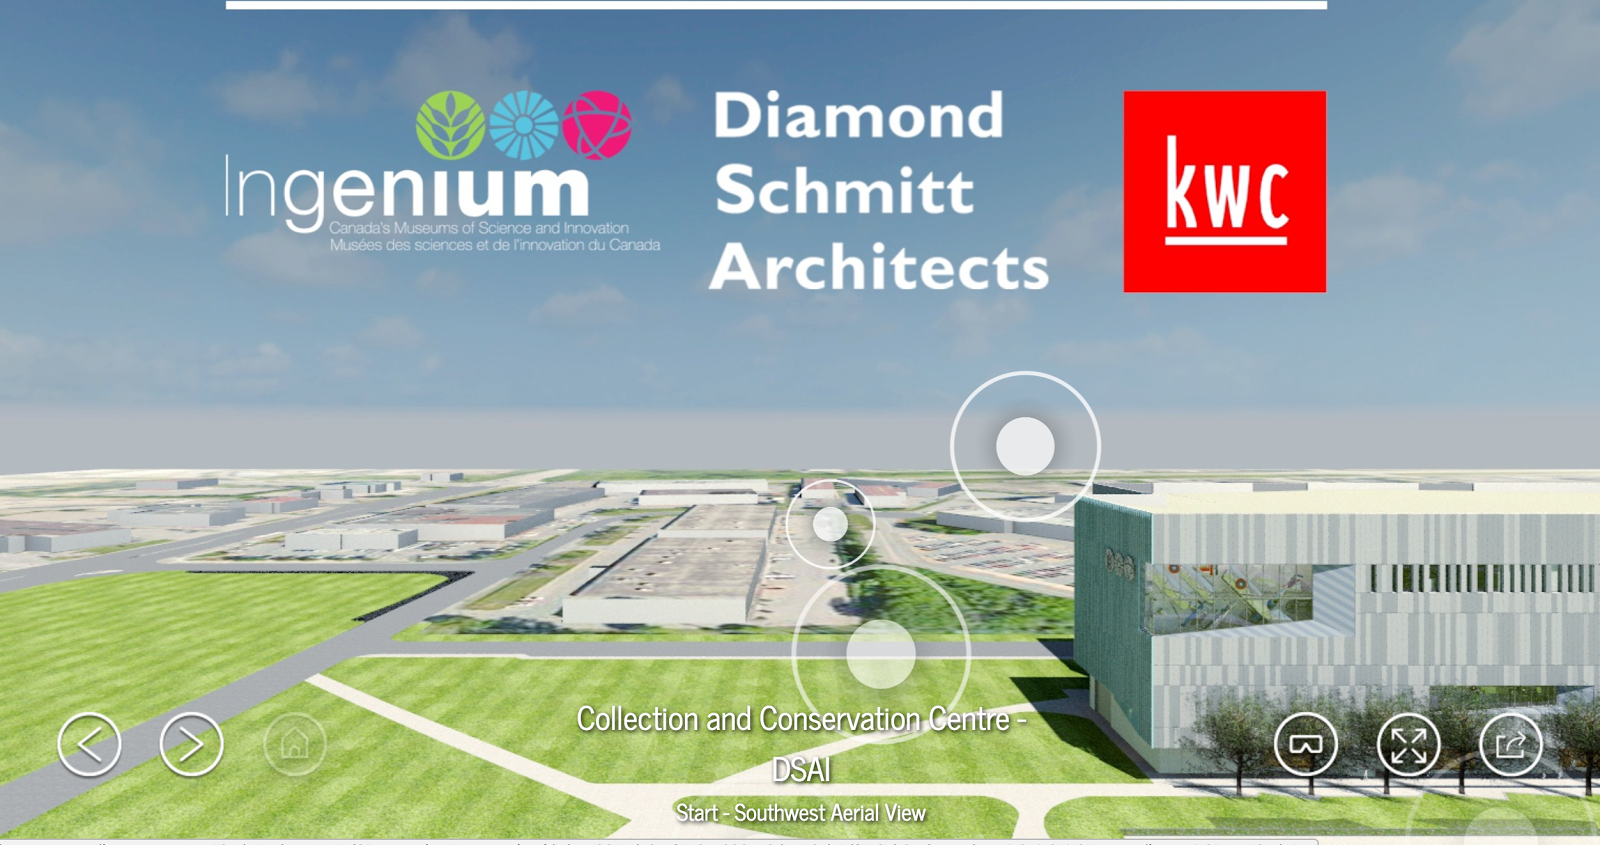 Sharing a Vision with Clients, with Andrew Chung of Diamond Schmitt Architects